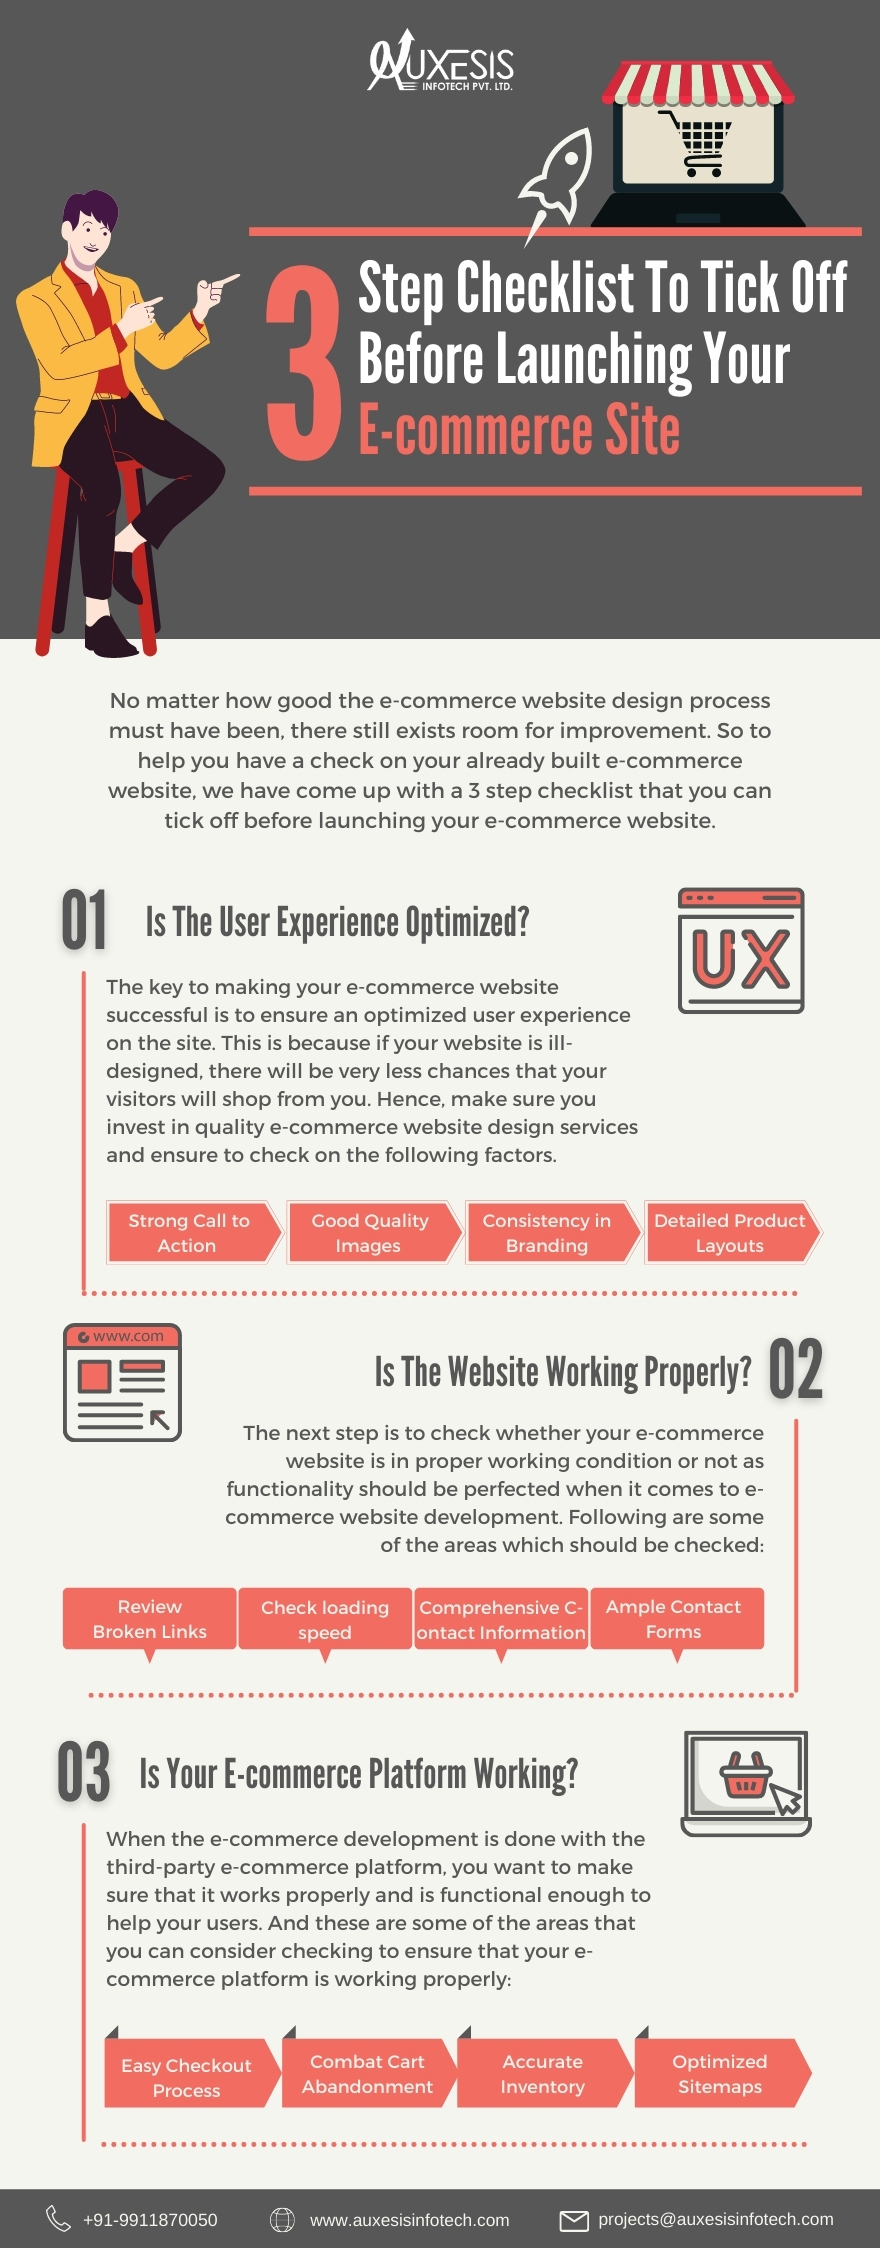 pre-launch checklis for your e-commerce website infographic